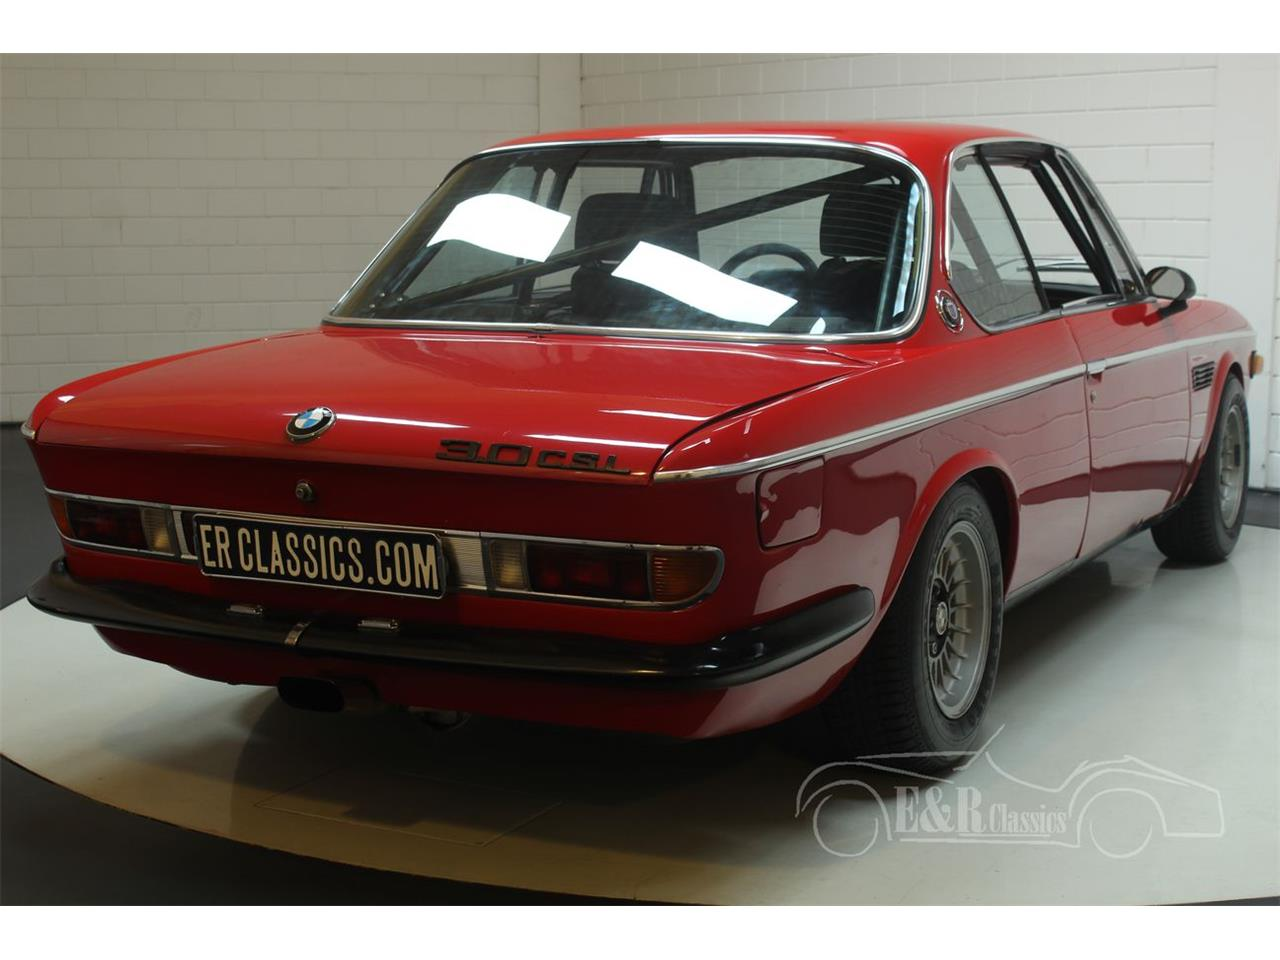 Large Picture of '73 3.0CSL located in Noord-Brabant - $135,500.00 Offered by E & R Classics - PH42